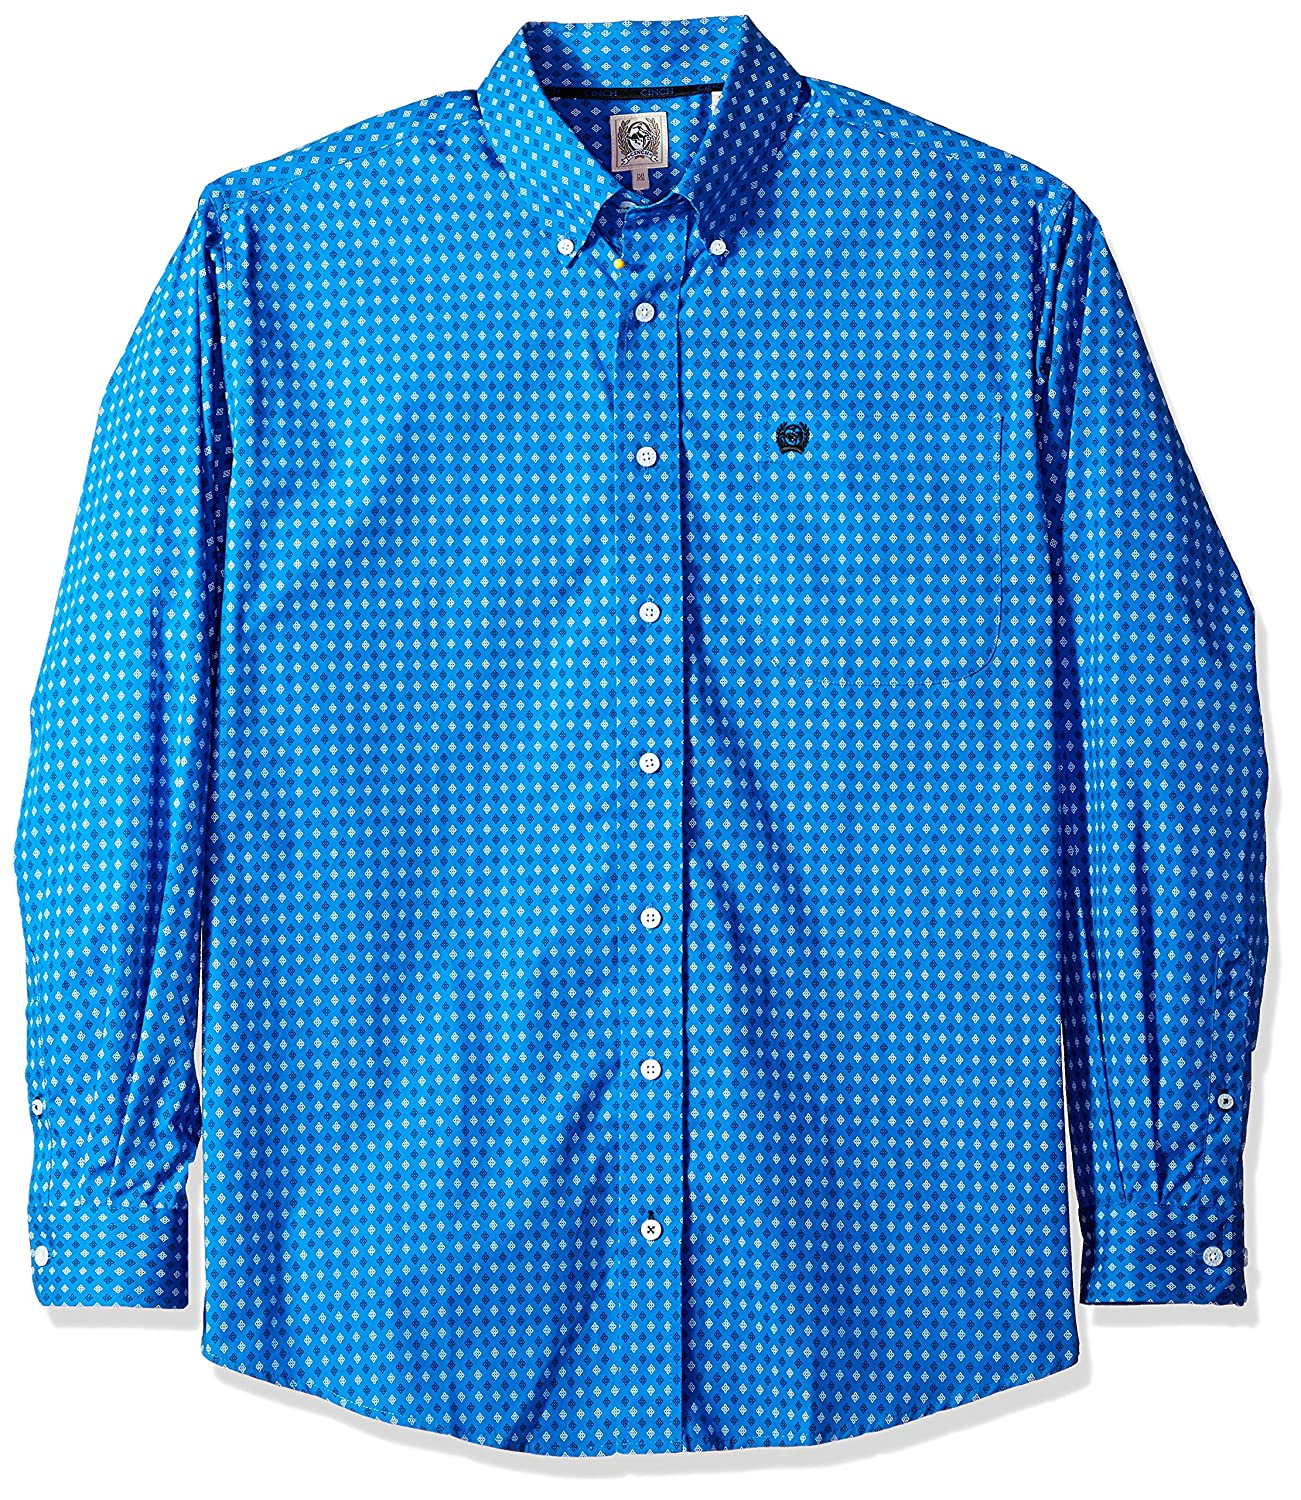 Cinch SHIRT メンズ B0753HB849 Large|Royal Diamond Royal Diamond Large